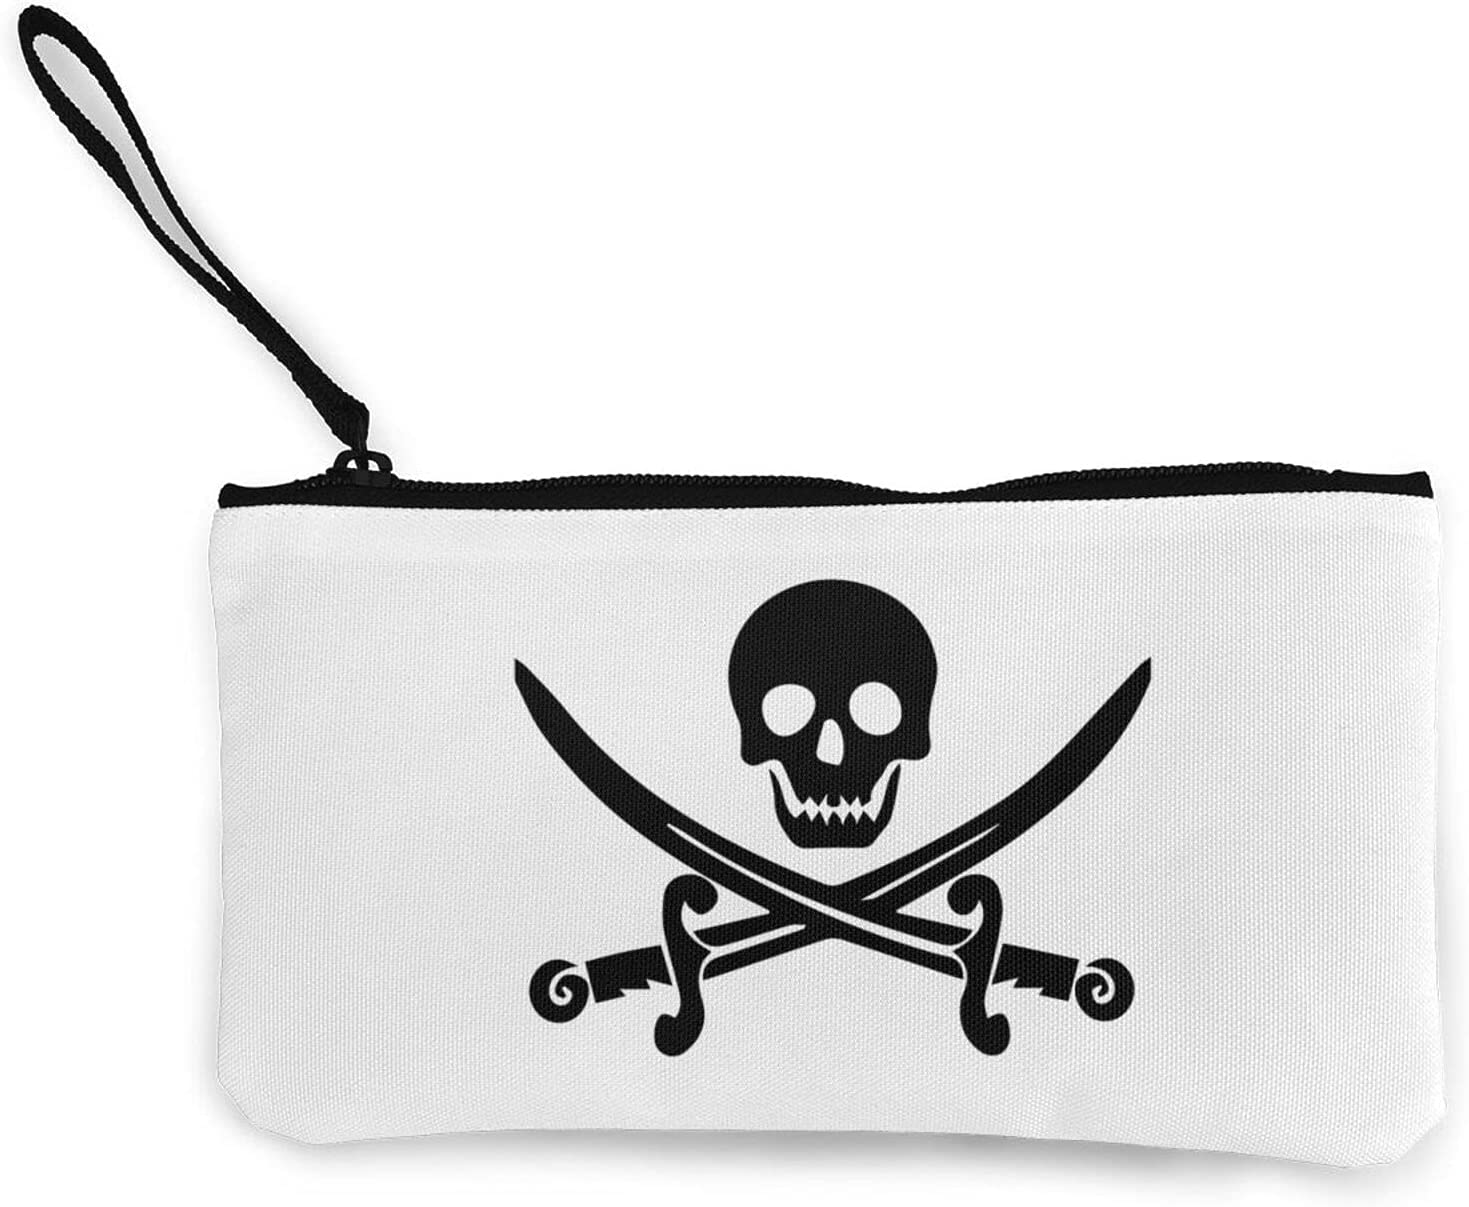 Jolly Roger. John Rackham Calico Jack Multifunction Travel Toiletry Pouch Small Canvas Coin Wallet Bag Zipper